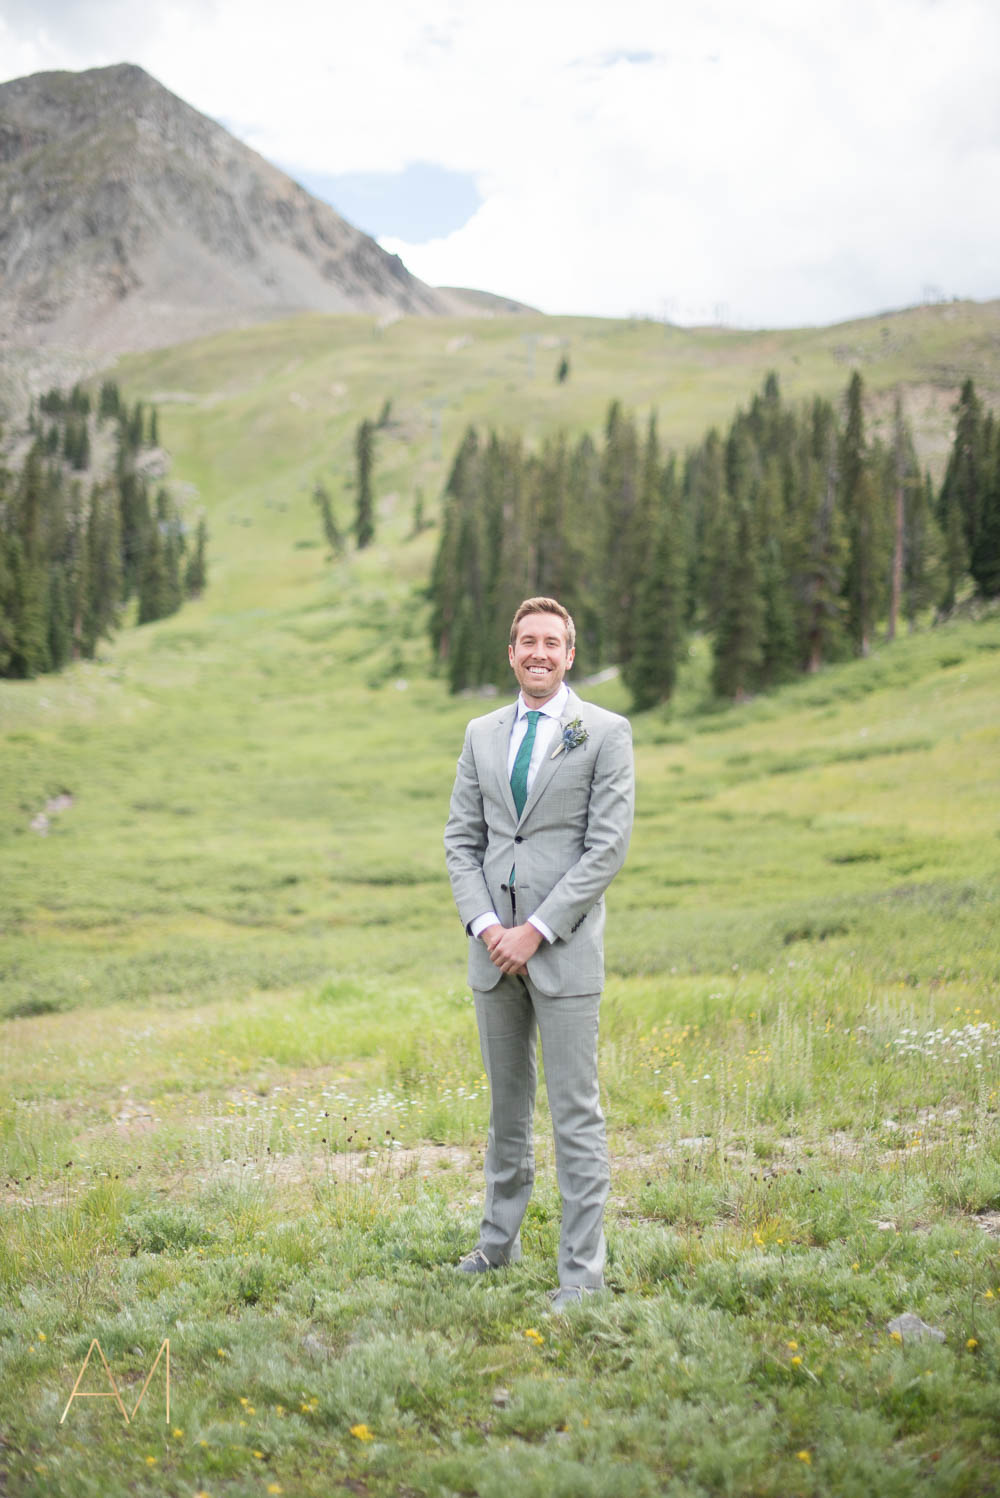 AshleighMillerWeddings-MadeleineAaron-Wedding-ArapahoeBasin-Colorado-1689.jpg